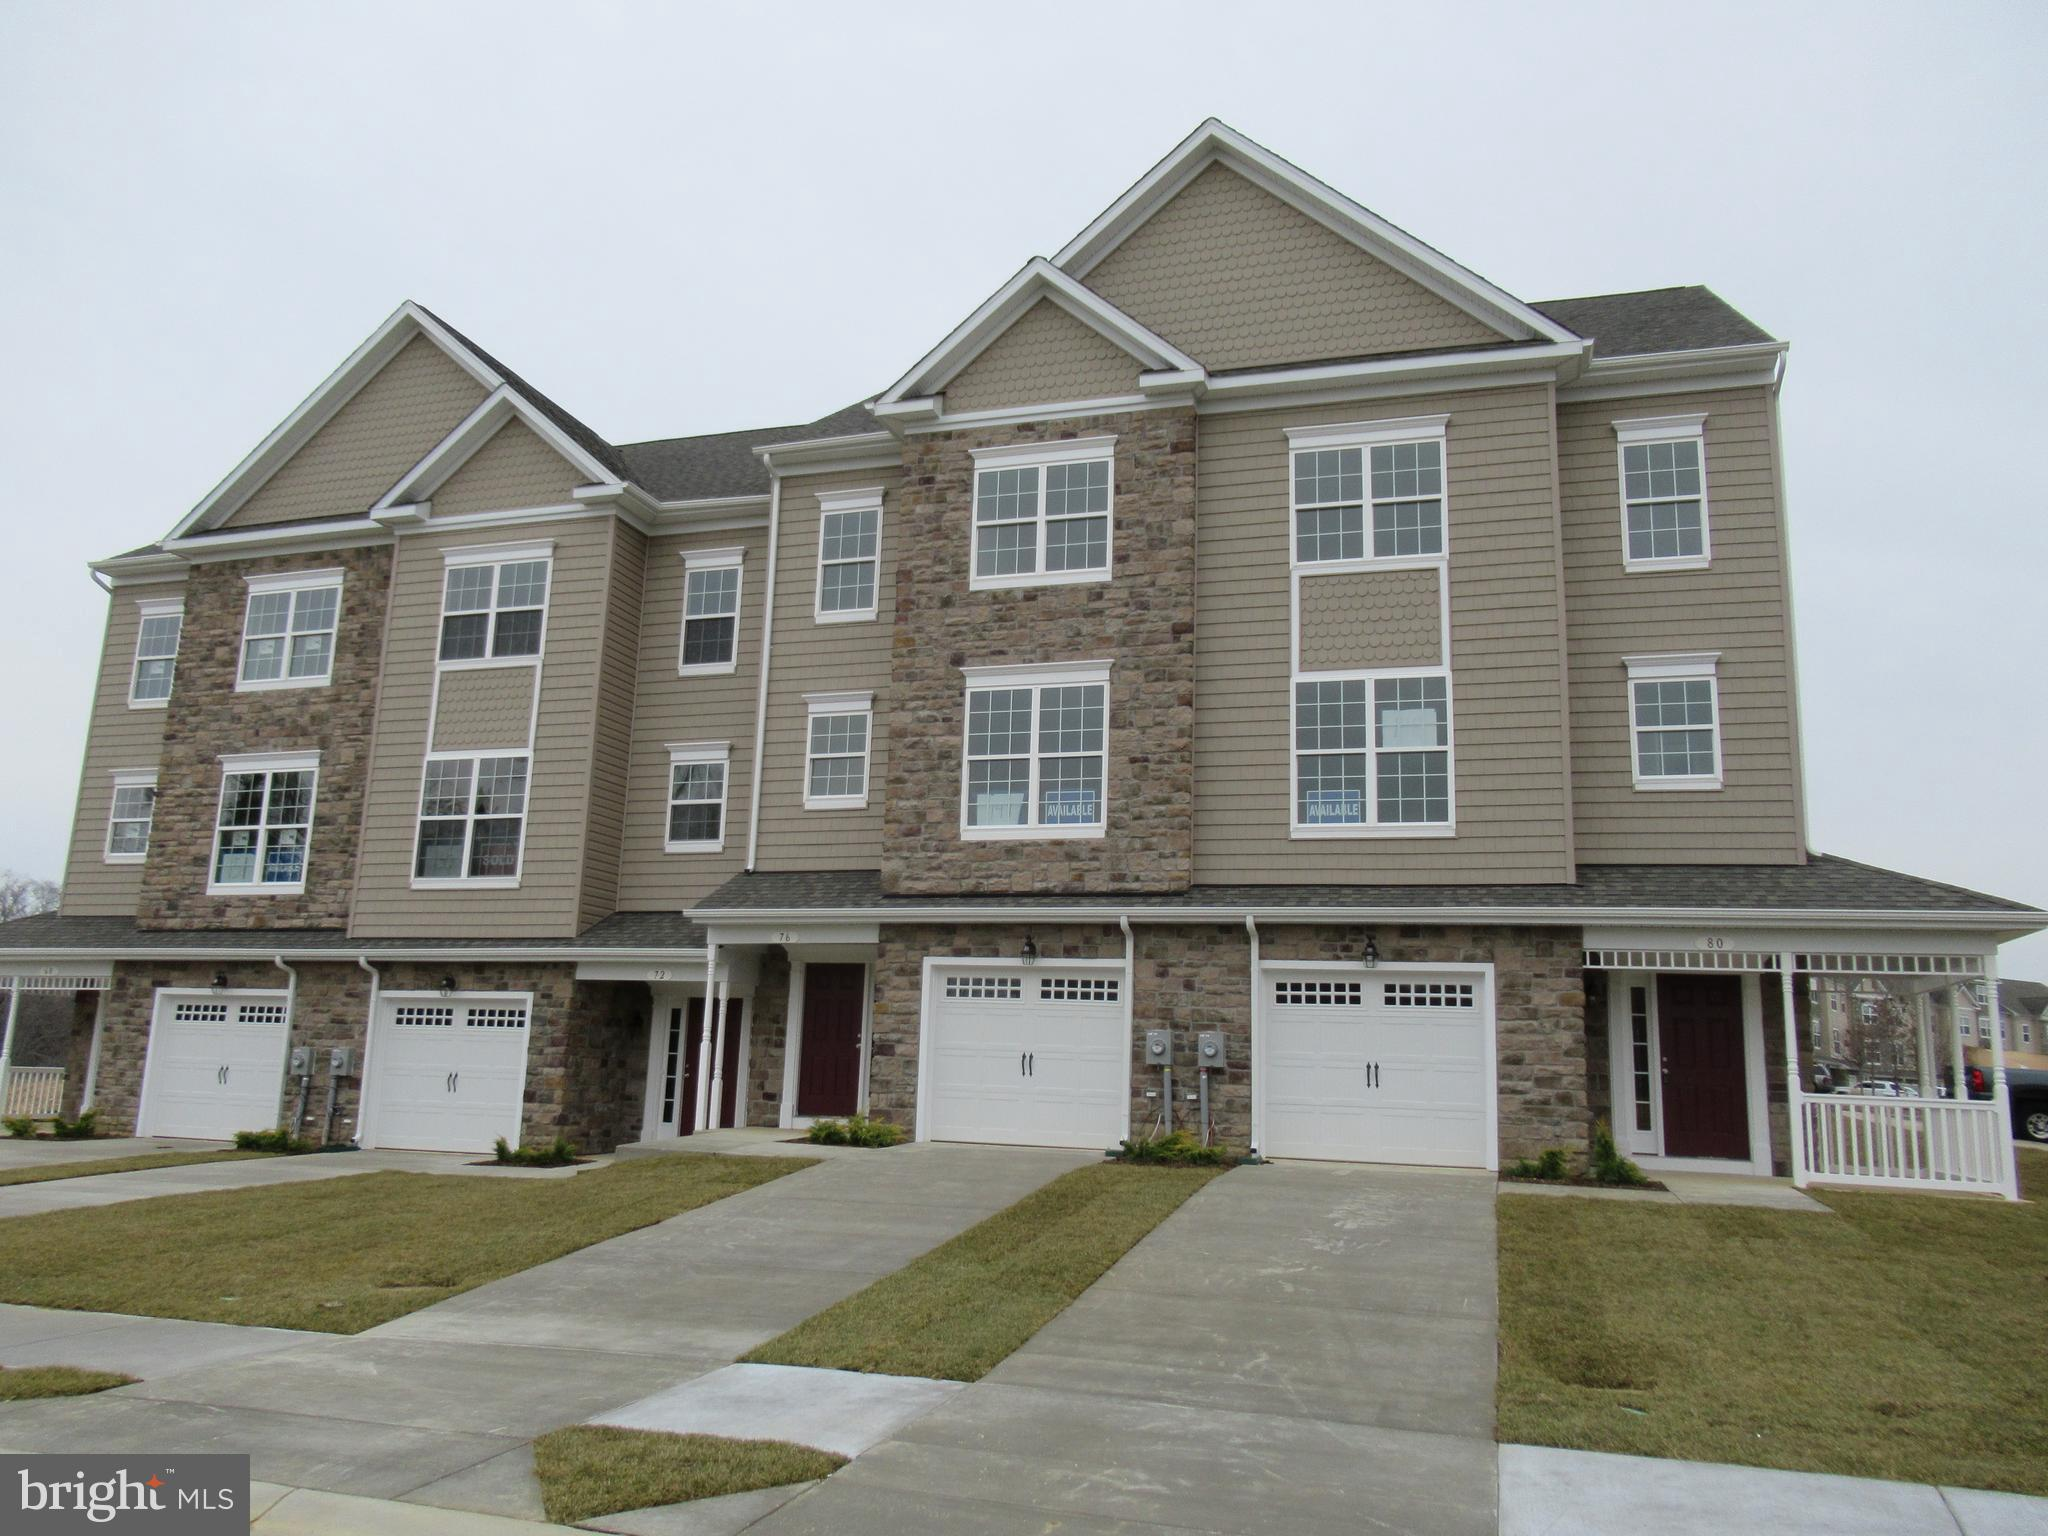 Lot 160 3 Level  Luxury Garage Townhome! This home is over 2200 square ft!  Builder incentives inclu